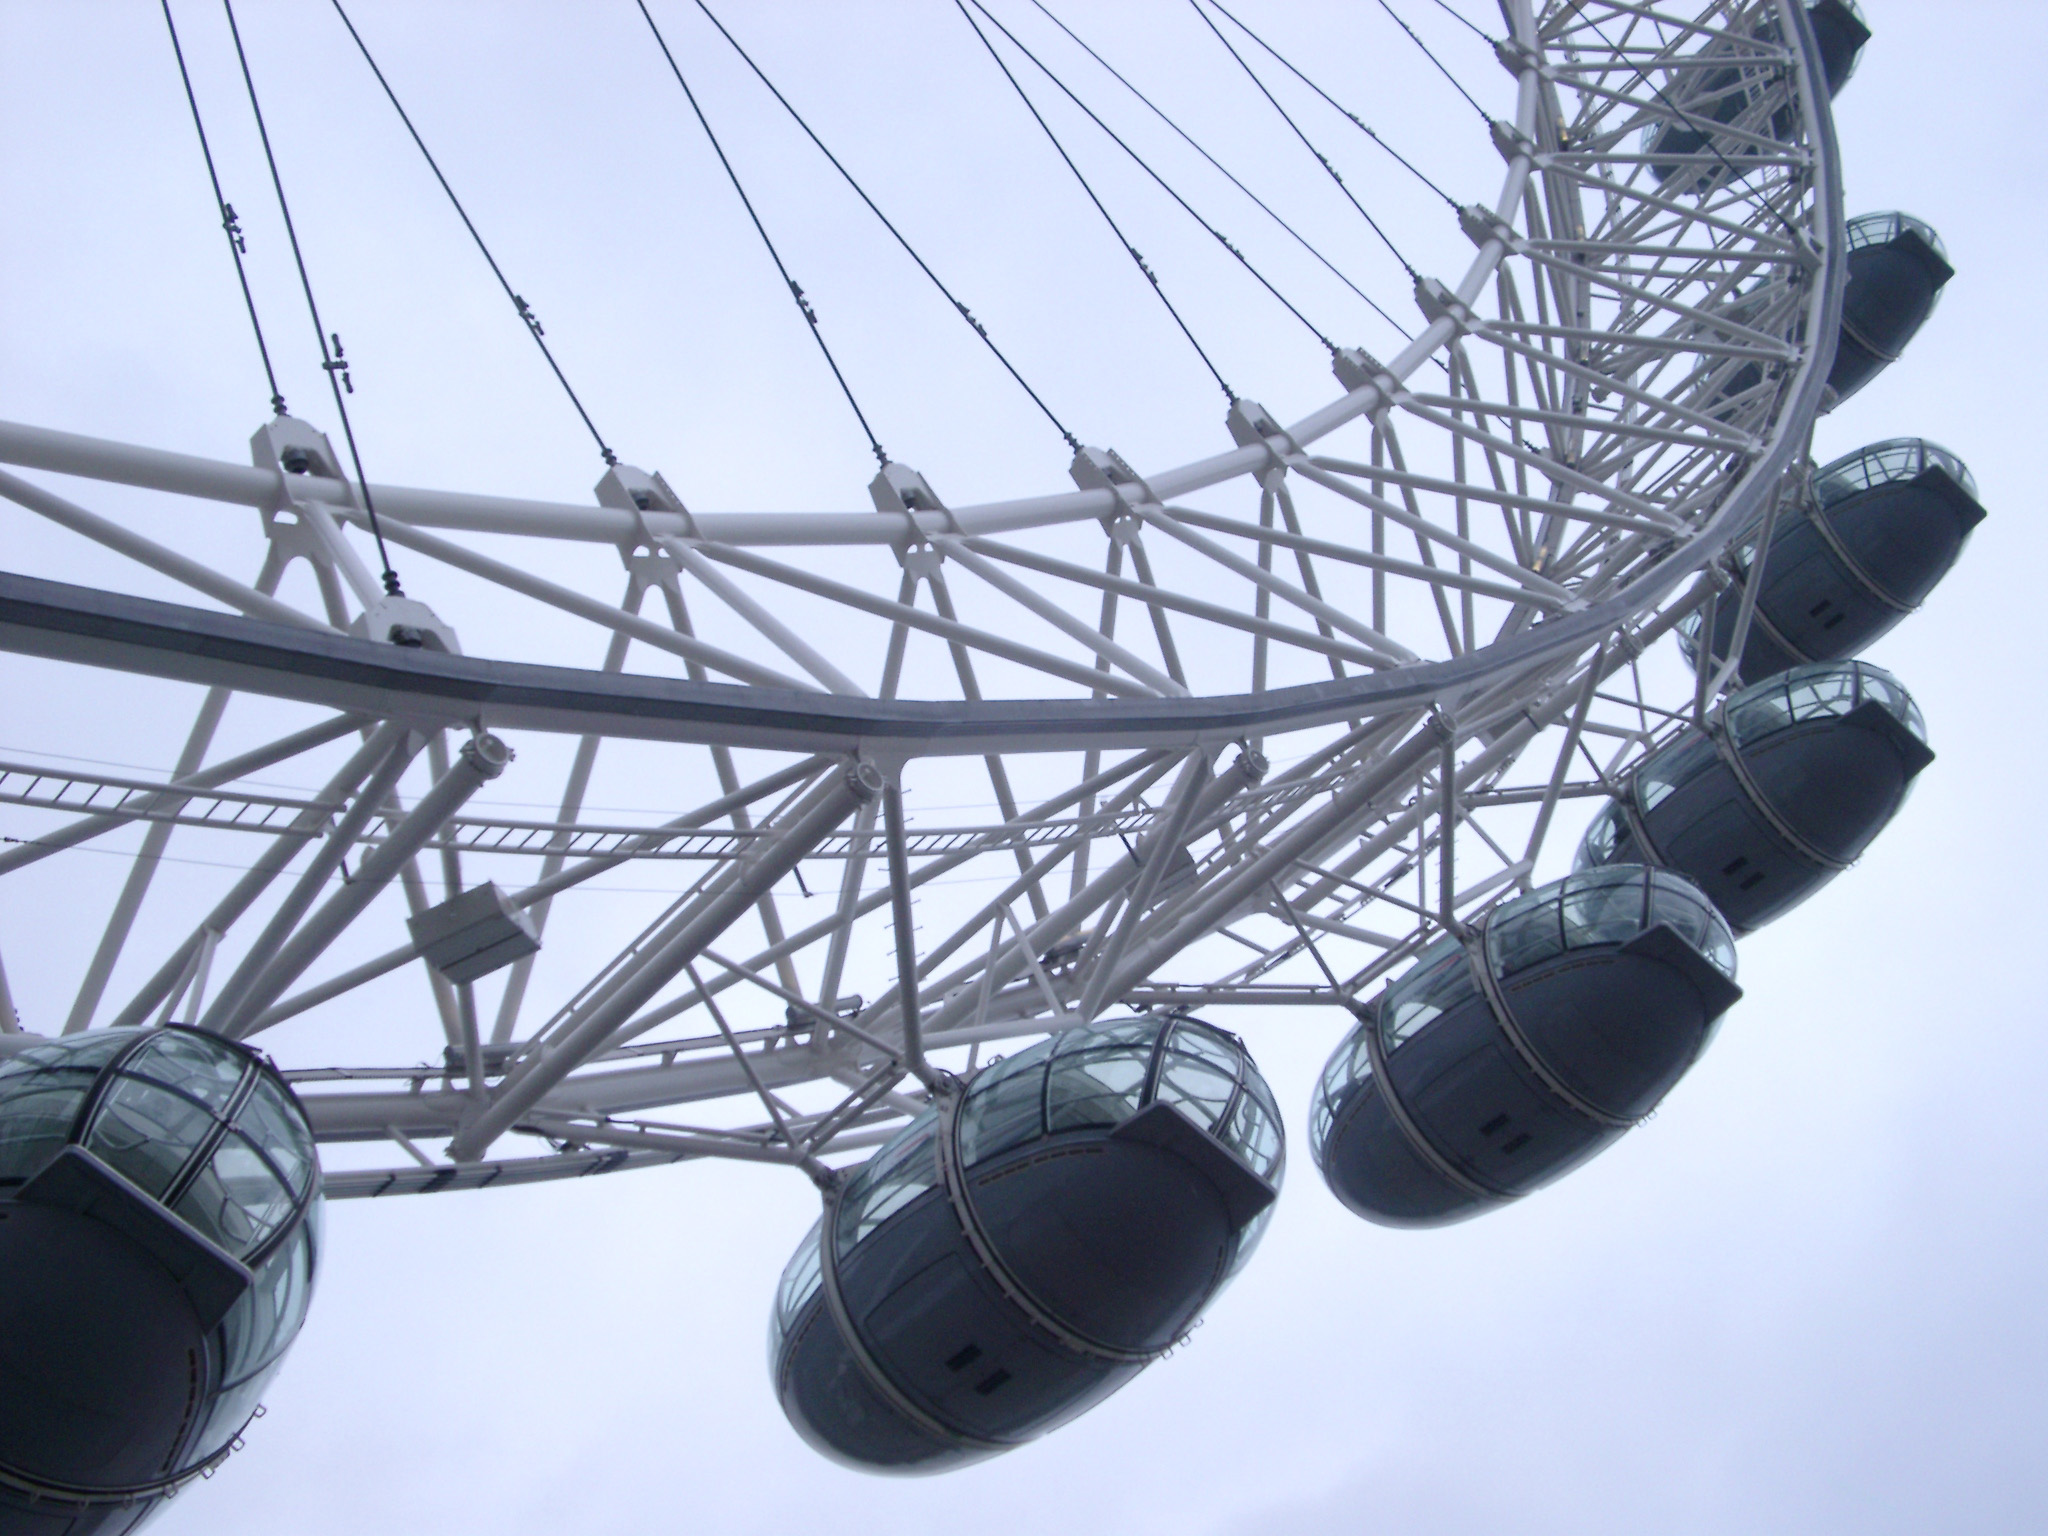 Detail of the ovoid passenger capsules on the rim of the London Eye used as observation posts for viewing central London and the River Thames and a popular tourist attraction